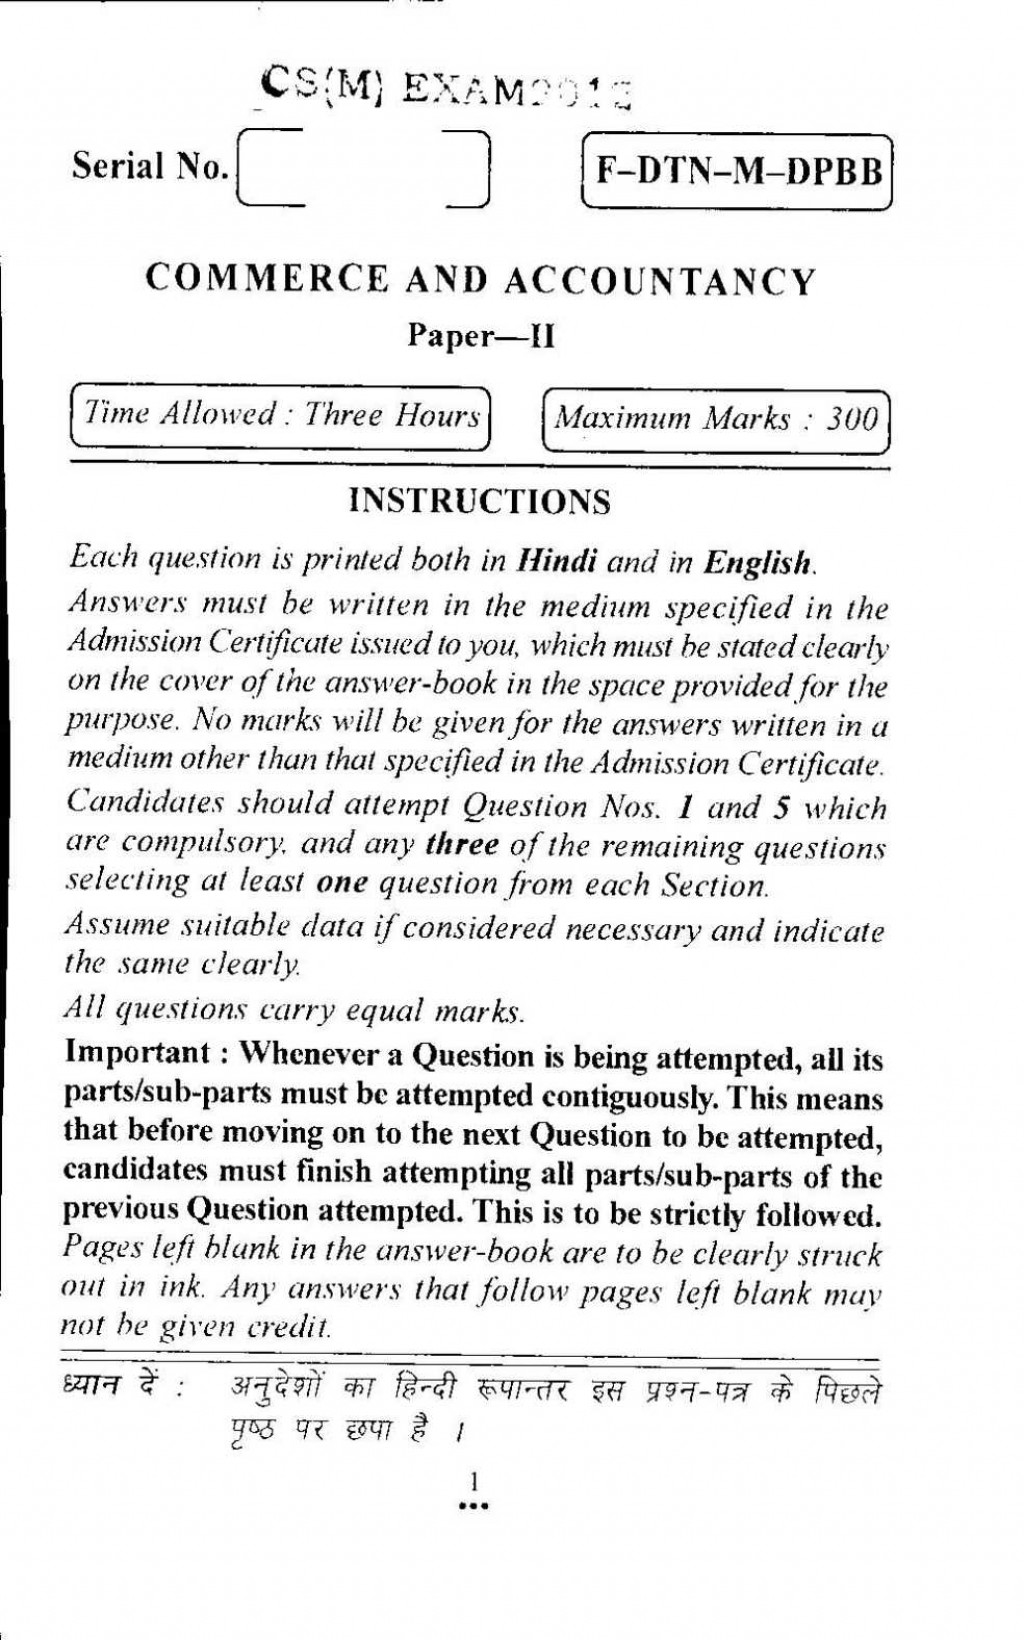 014 What Is An American Essay Example Civil Services Examination Commerce And Accountancy Paper Ii Previous Years Que Stupendous Ideas Definition Crevecoeur Summary Large